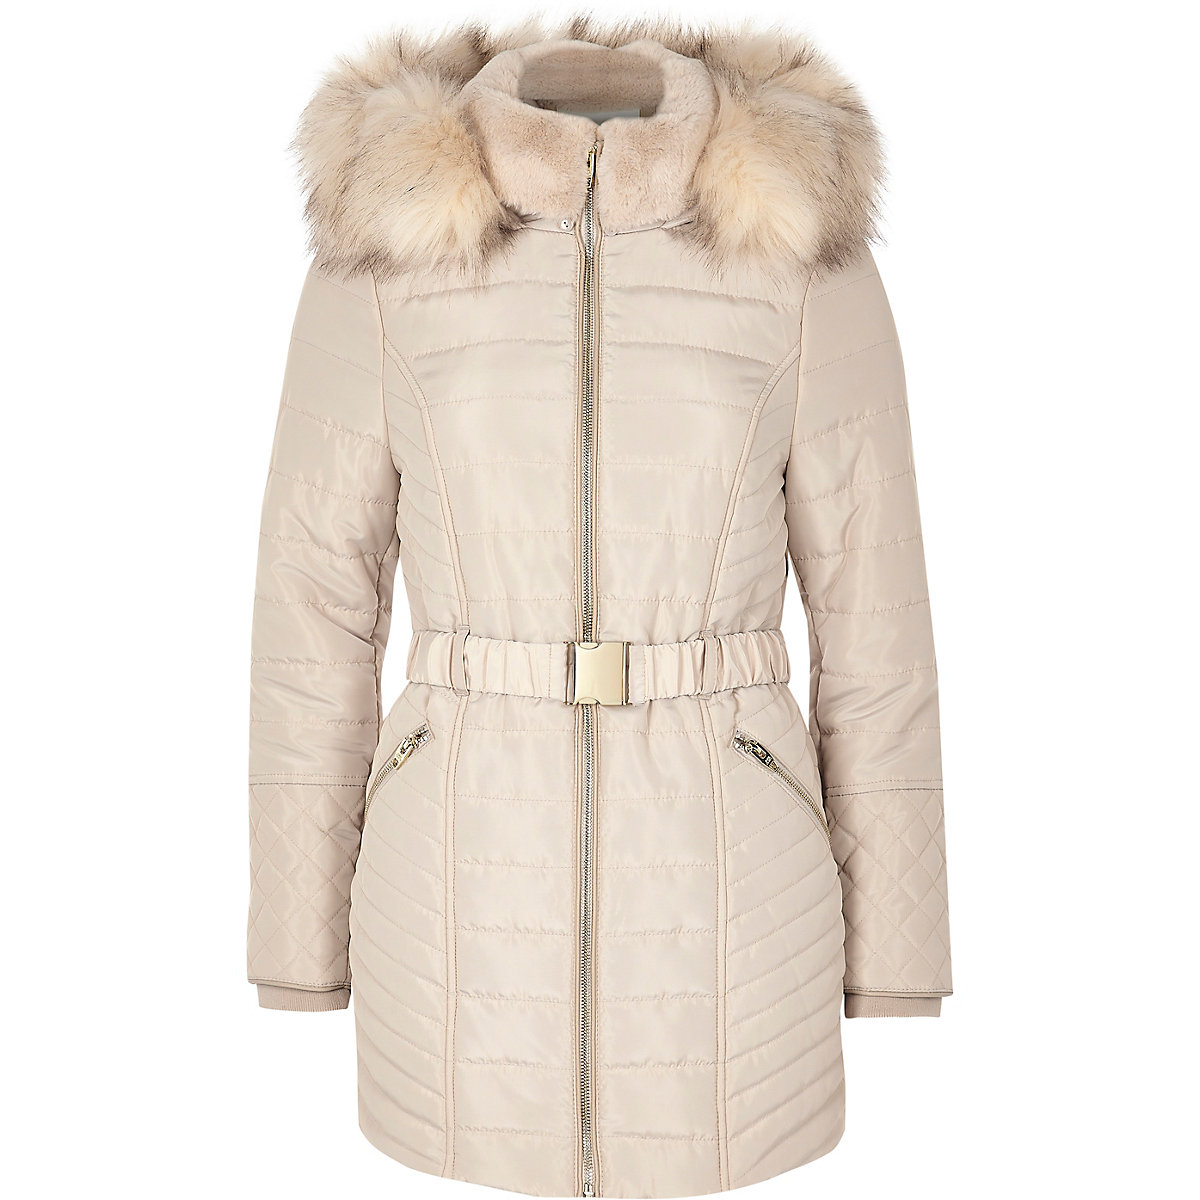 Petite cream faux fur belted padded coat